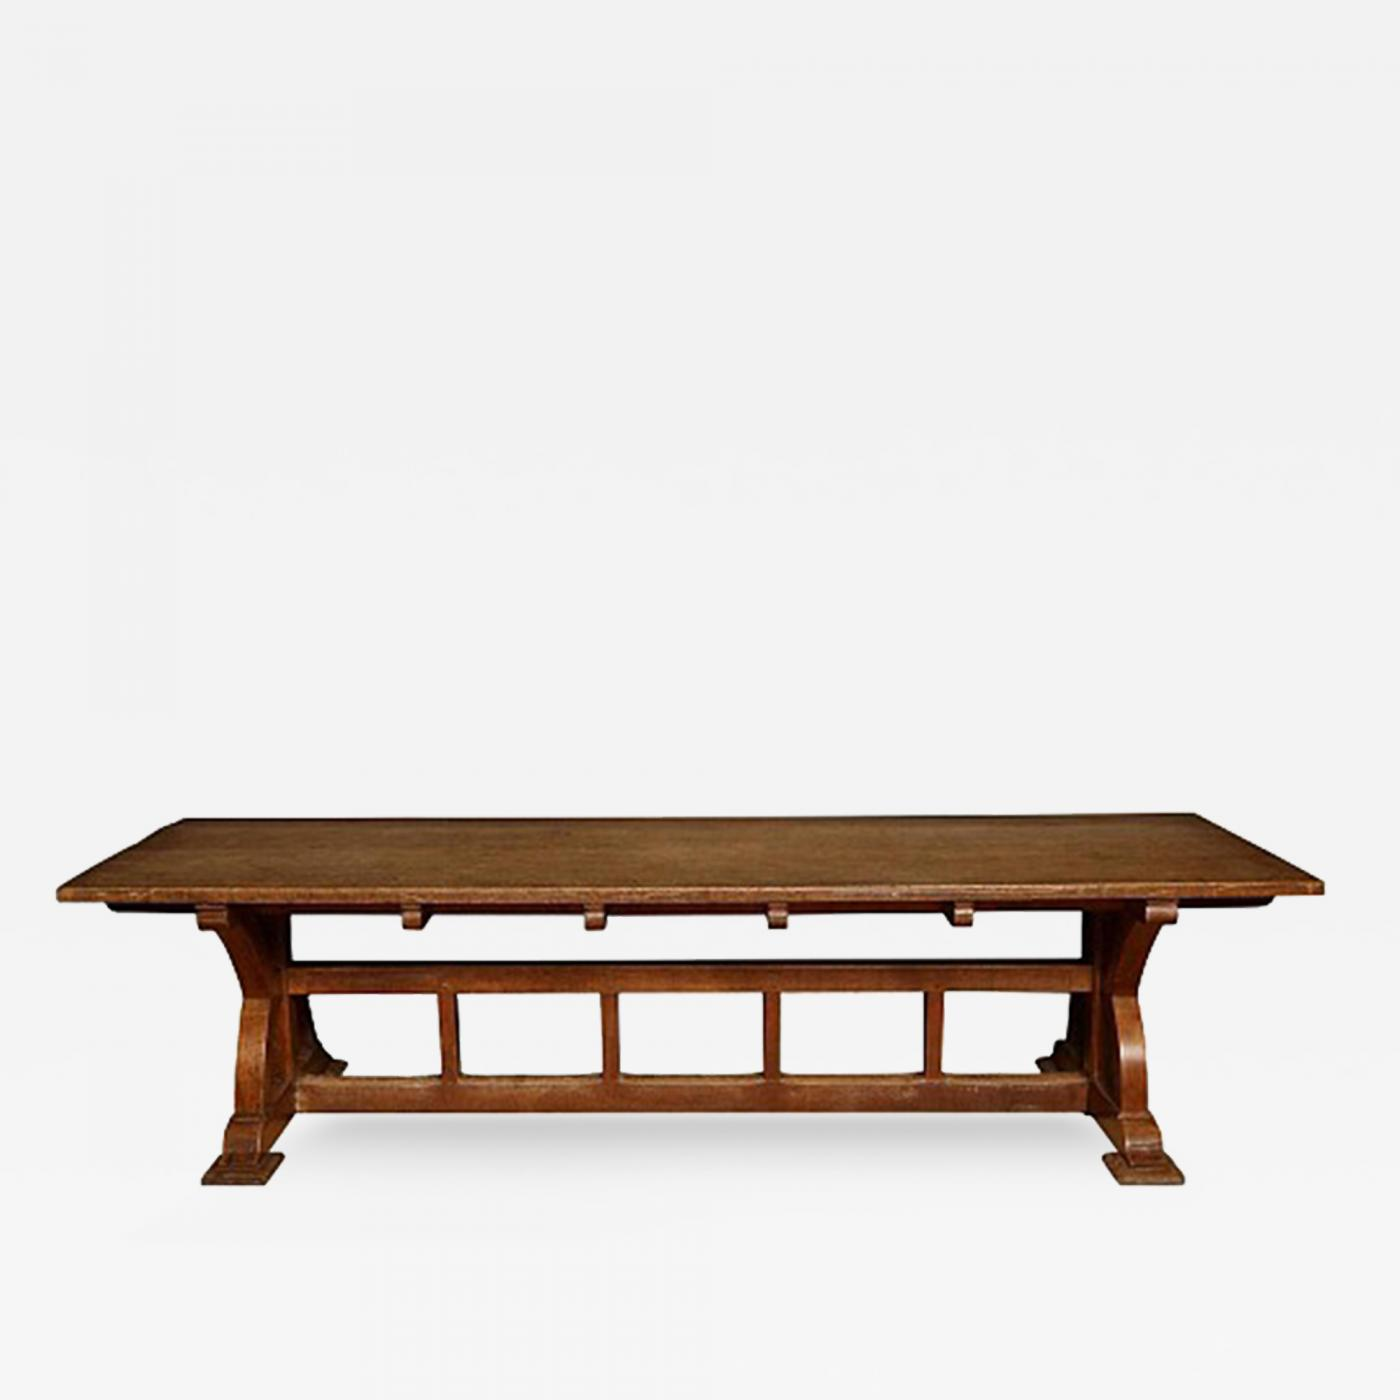 Arthur Romney Green A Arts and Crafts Oak Library Table